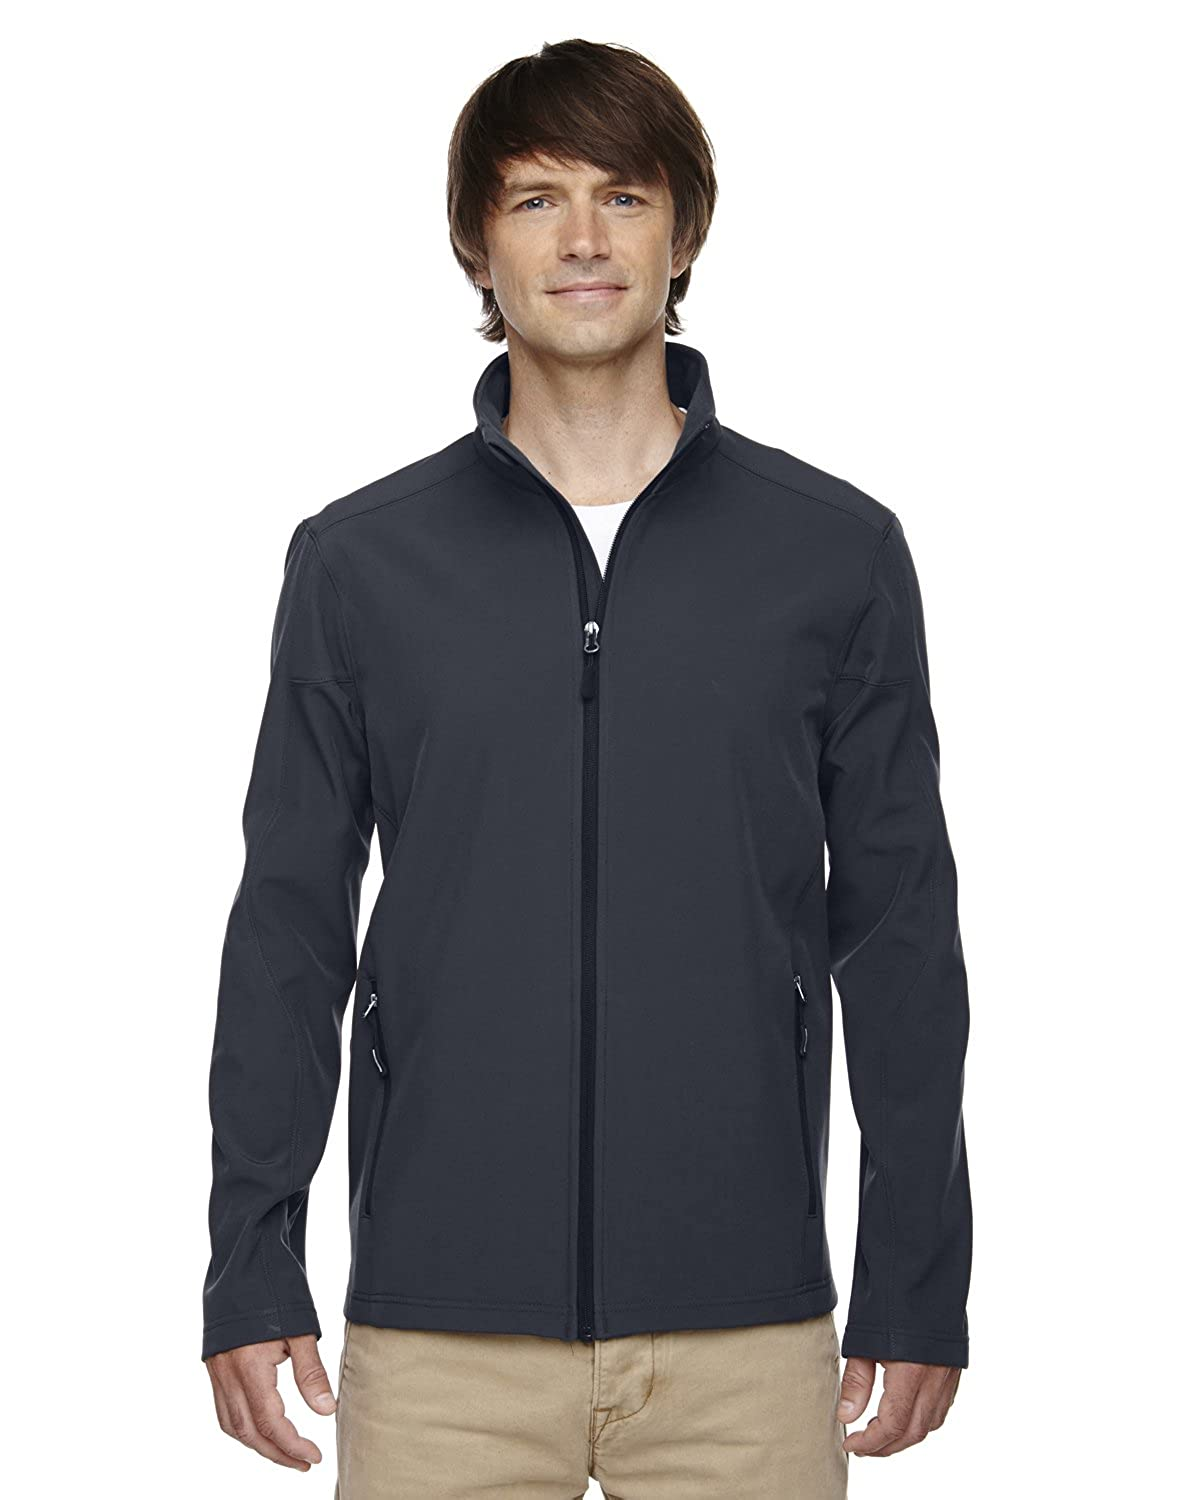 Ash City Core 365 88184 - CRUISE TM MEN'S 2-LAYER FLEECE BONDED SOFT SHELL JACKET Ash City - Core 365